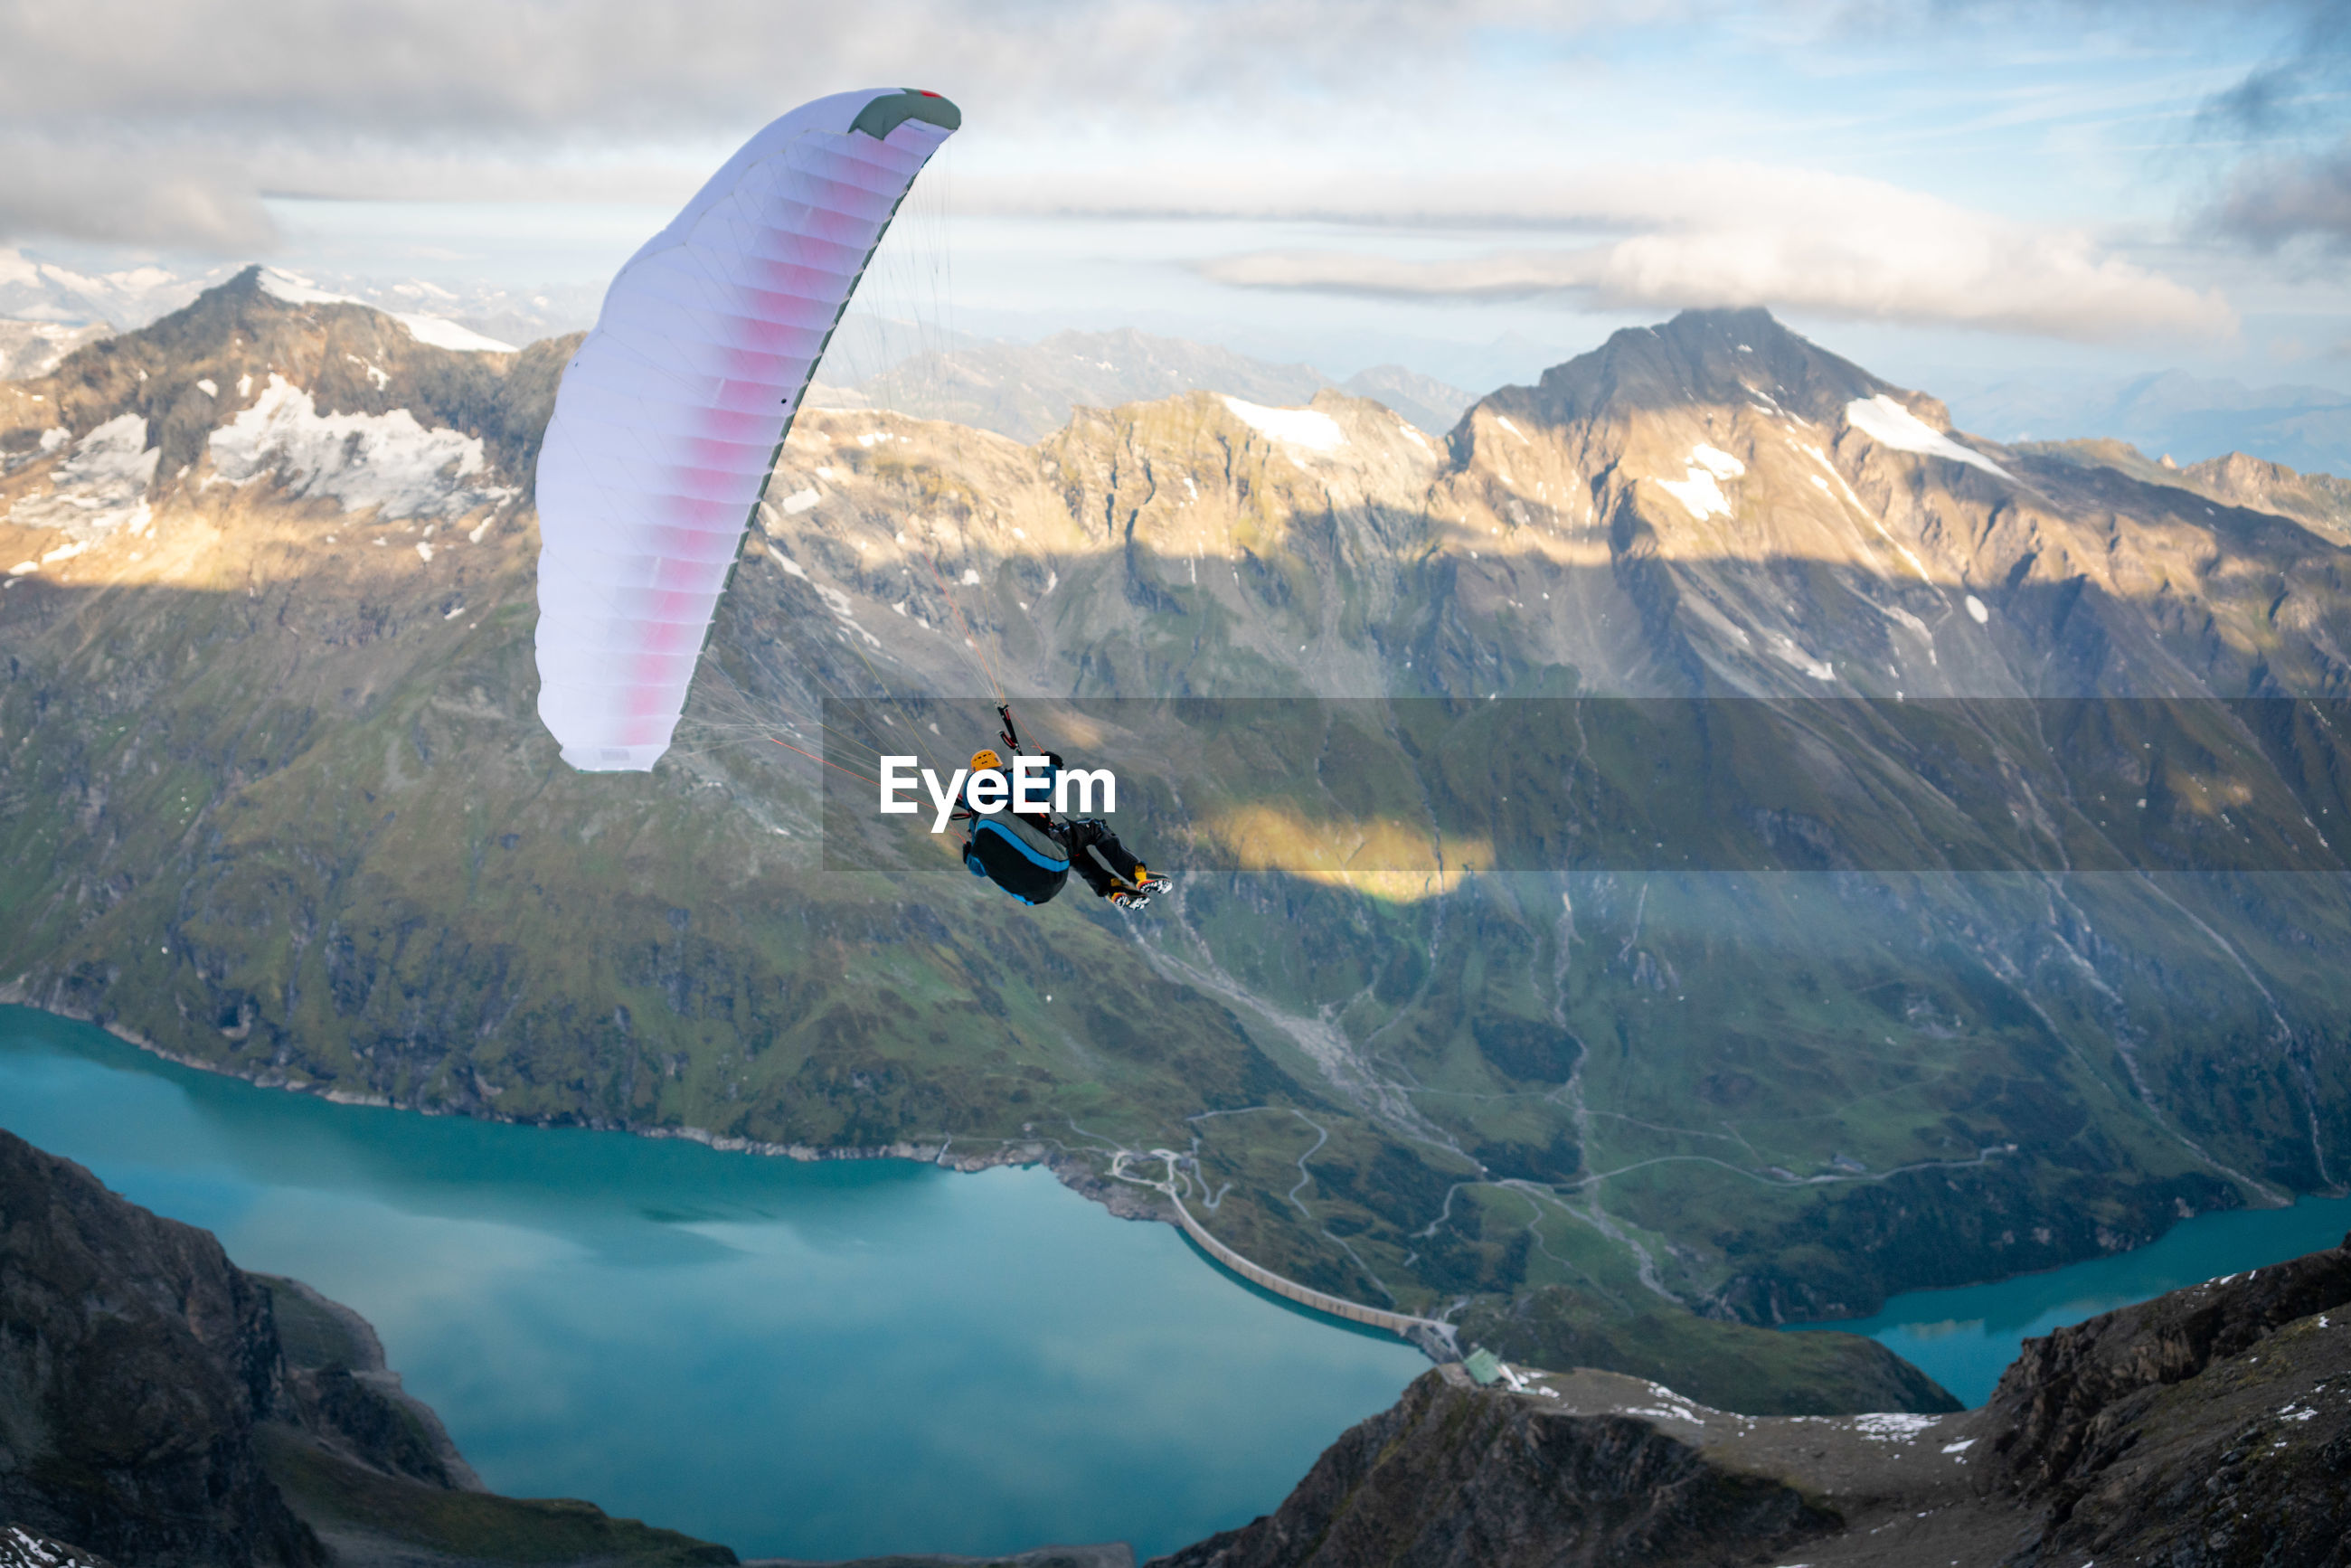 Man paragliding over mountains against sky